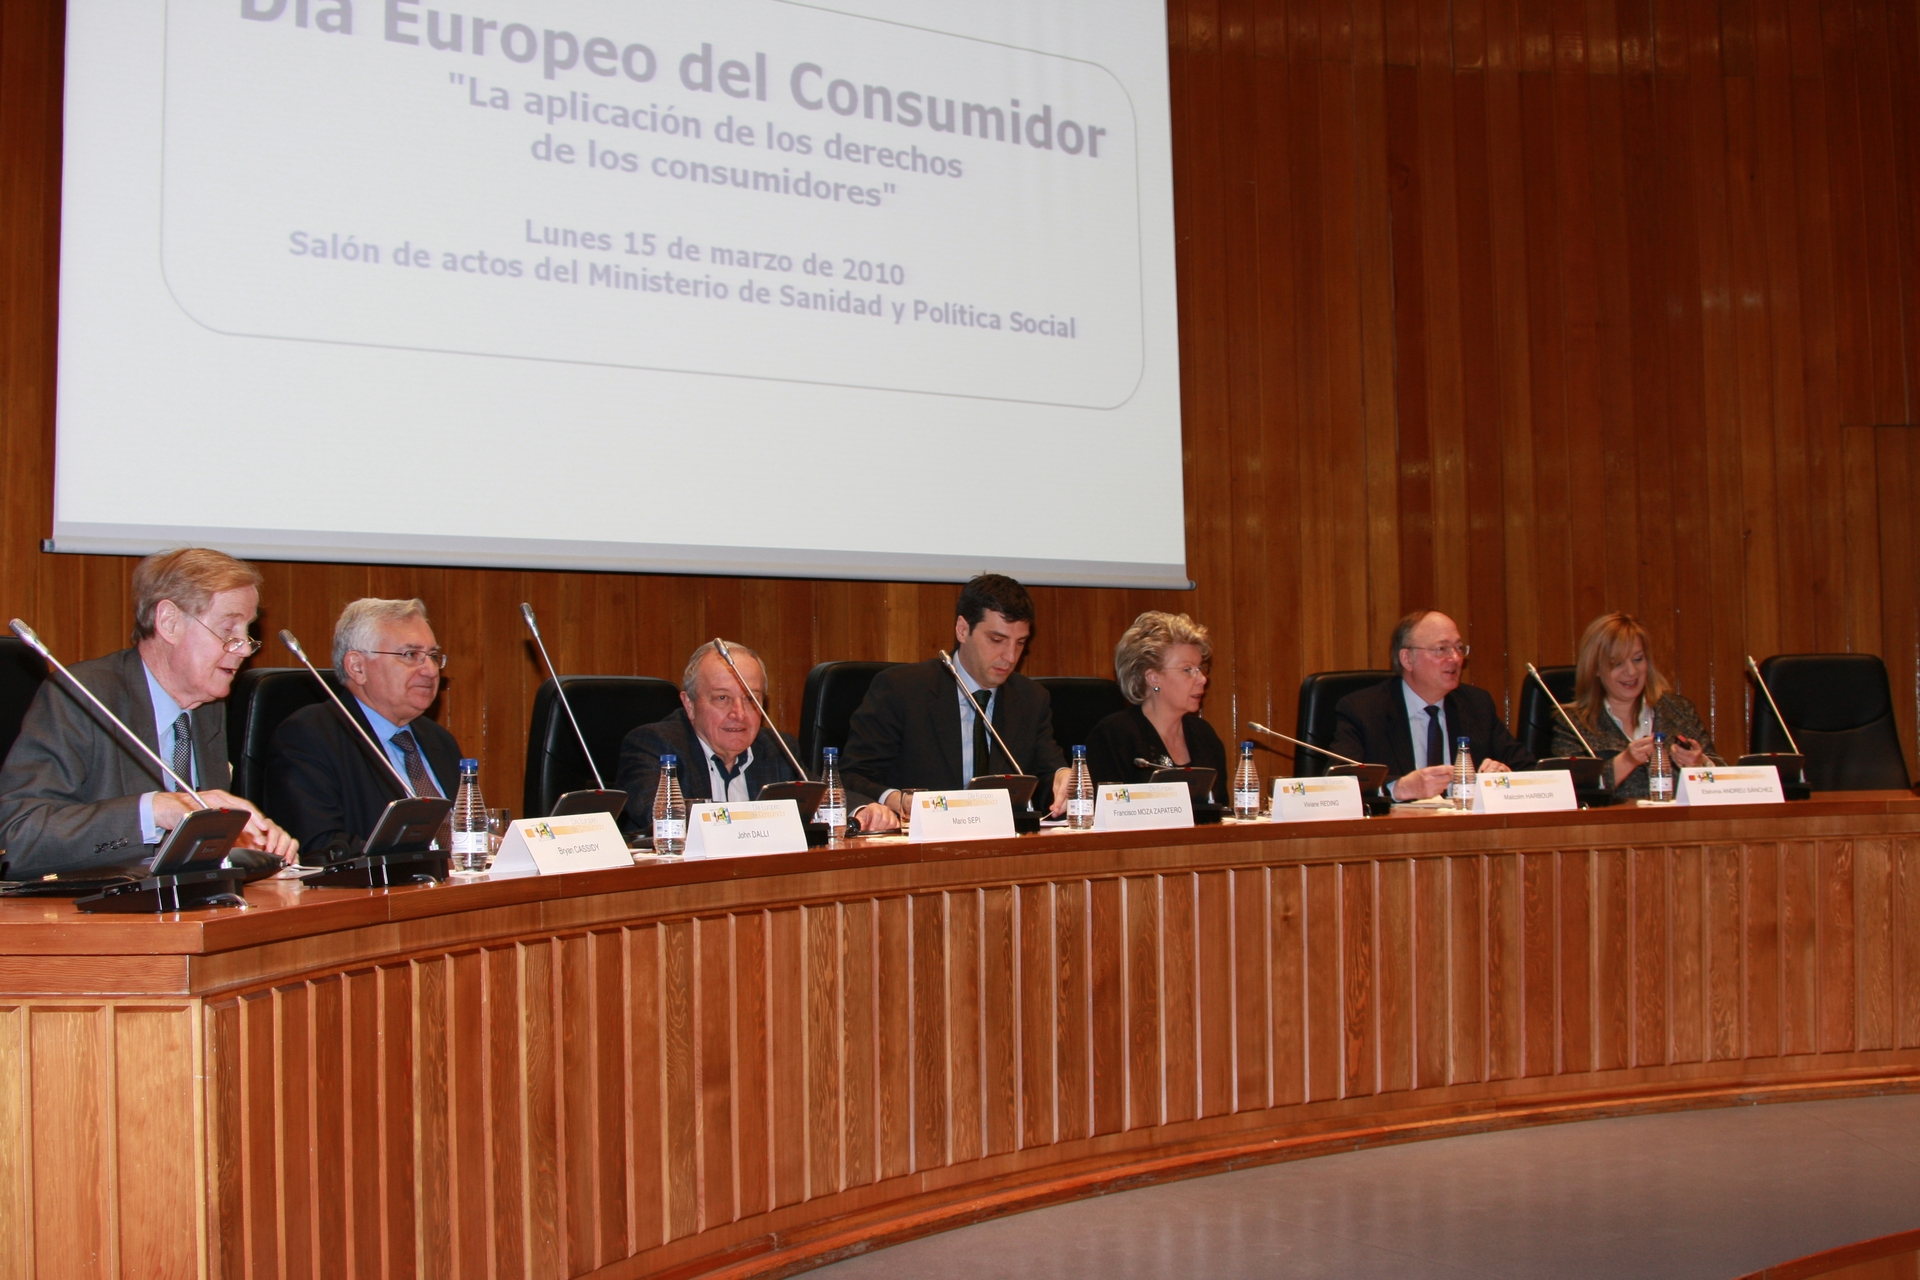 Speakers at the European Consumer Day 2010